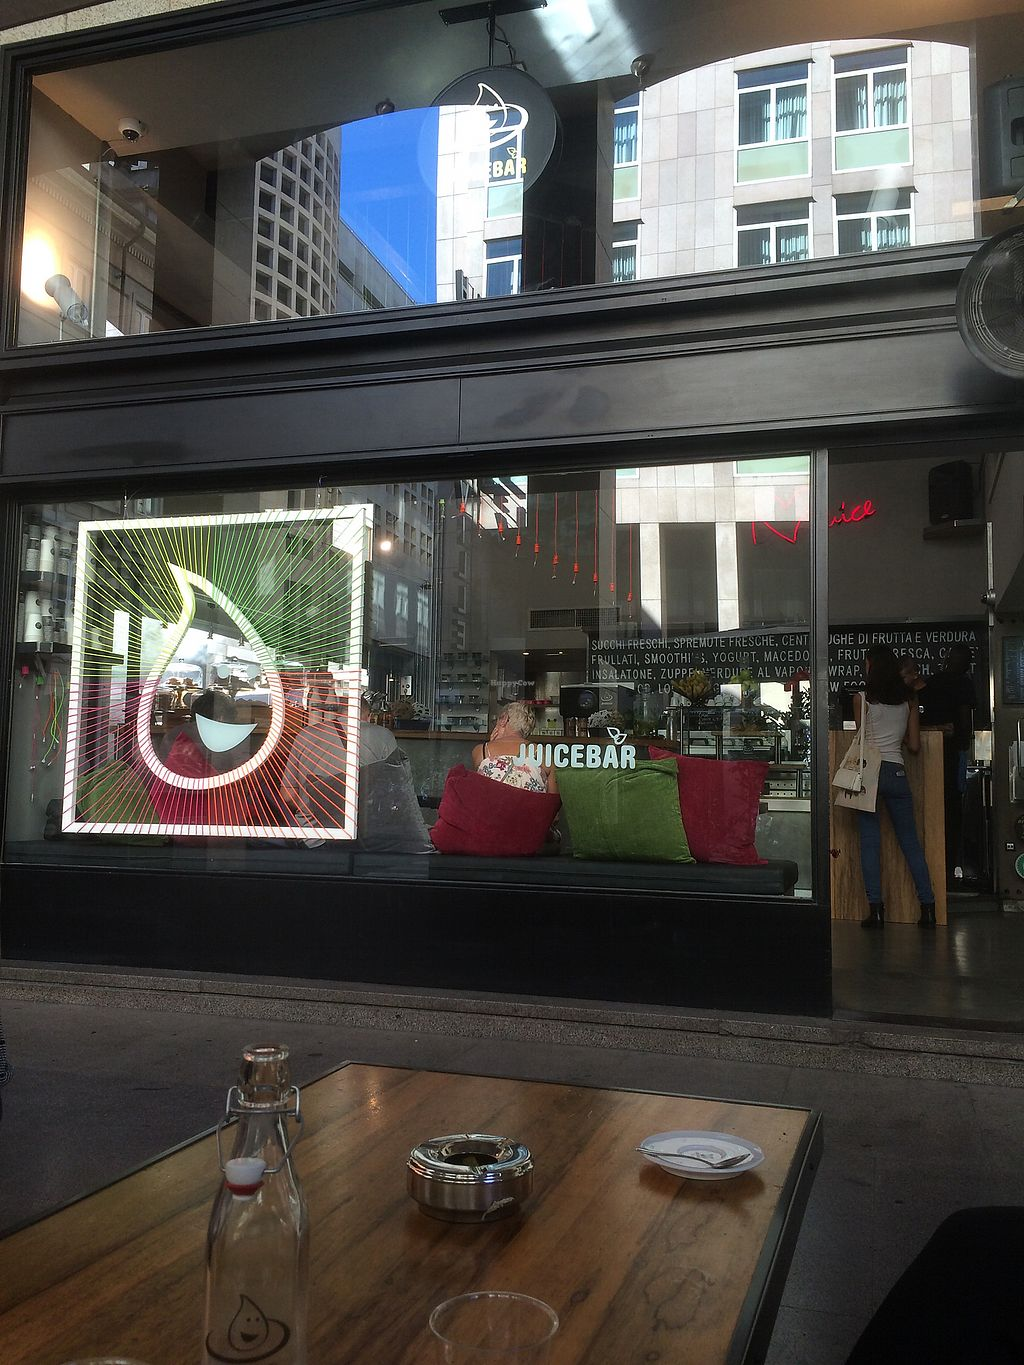 "Photo of Juicebar   by <a href=""/members/profile/HappyRhino"">HappyRhino</a> <br/>Has Latte Di Mandorle/Soia on the counter so you don't have to ask for it. one cappuccino, an americano and a bottle of water for 4.80€=fair prices. But the service was... well they did what they had to but obviously doesn't enjoy serving customers. Too loud music so they had problems hearing what I ordered. Had to repeat myself three times. But otherwise a nice and comfy place to chill for a moment.  <br/> July 25, 2017  - <a href='/contact/abuse/image/85085/284691'>Report</a>"